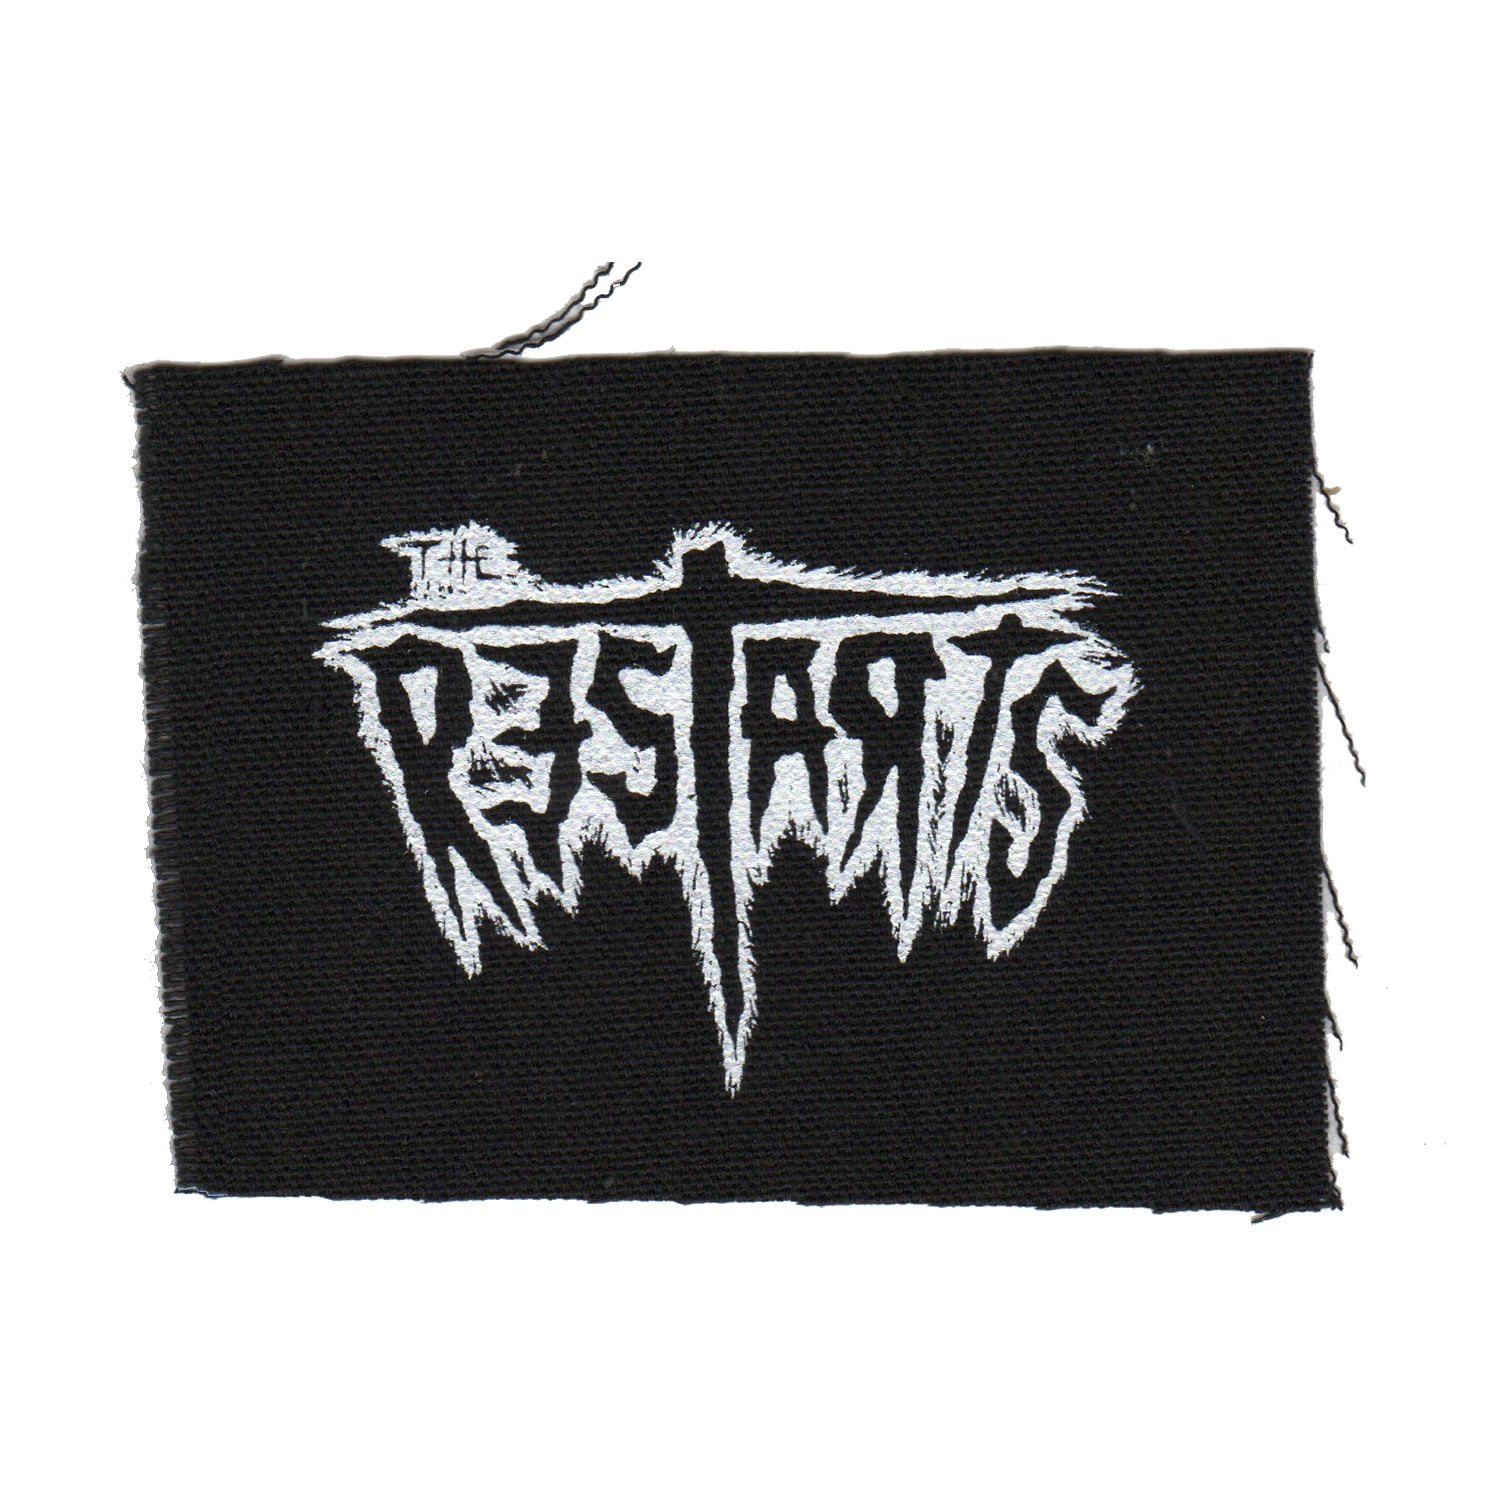 "The Restarts - Logo - Black - Patch - Cloth - Screenprinted - 4"" x 3"""